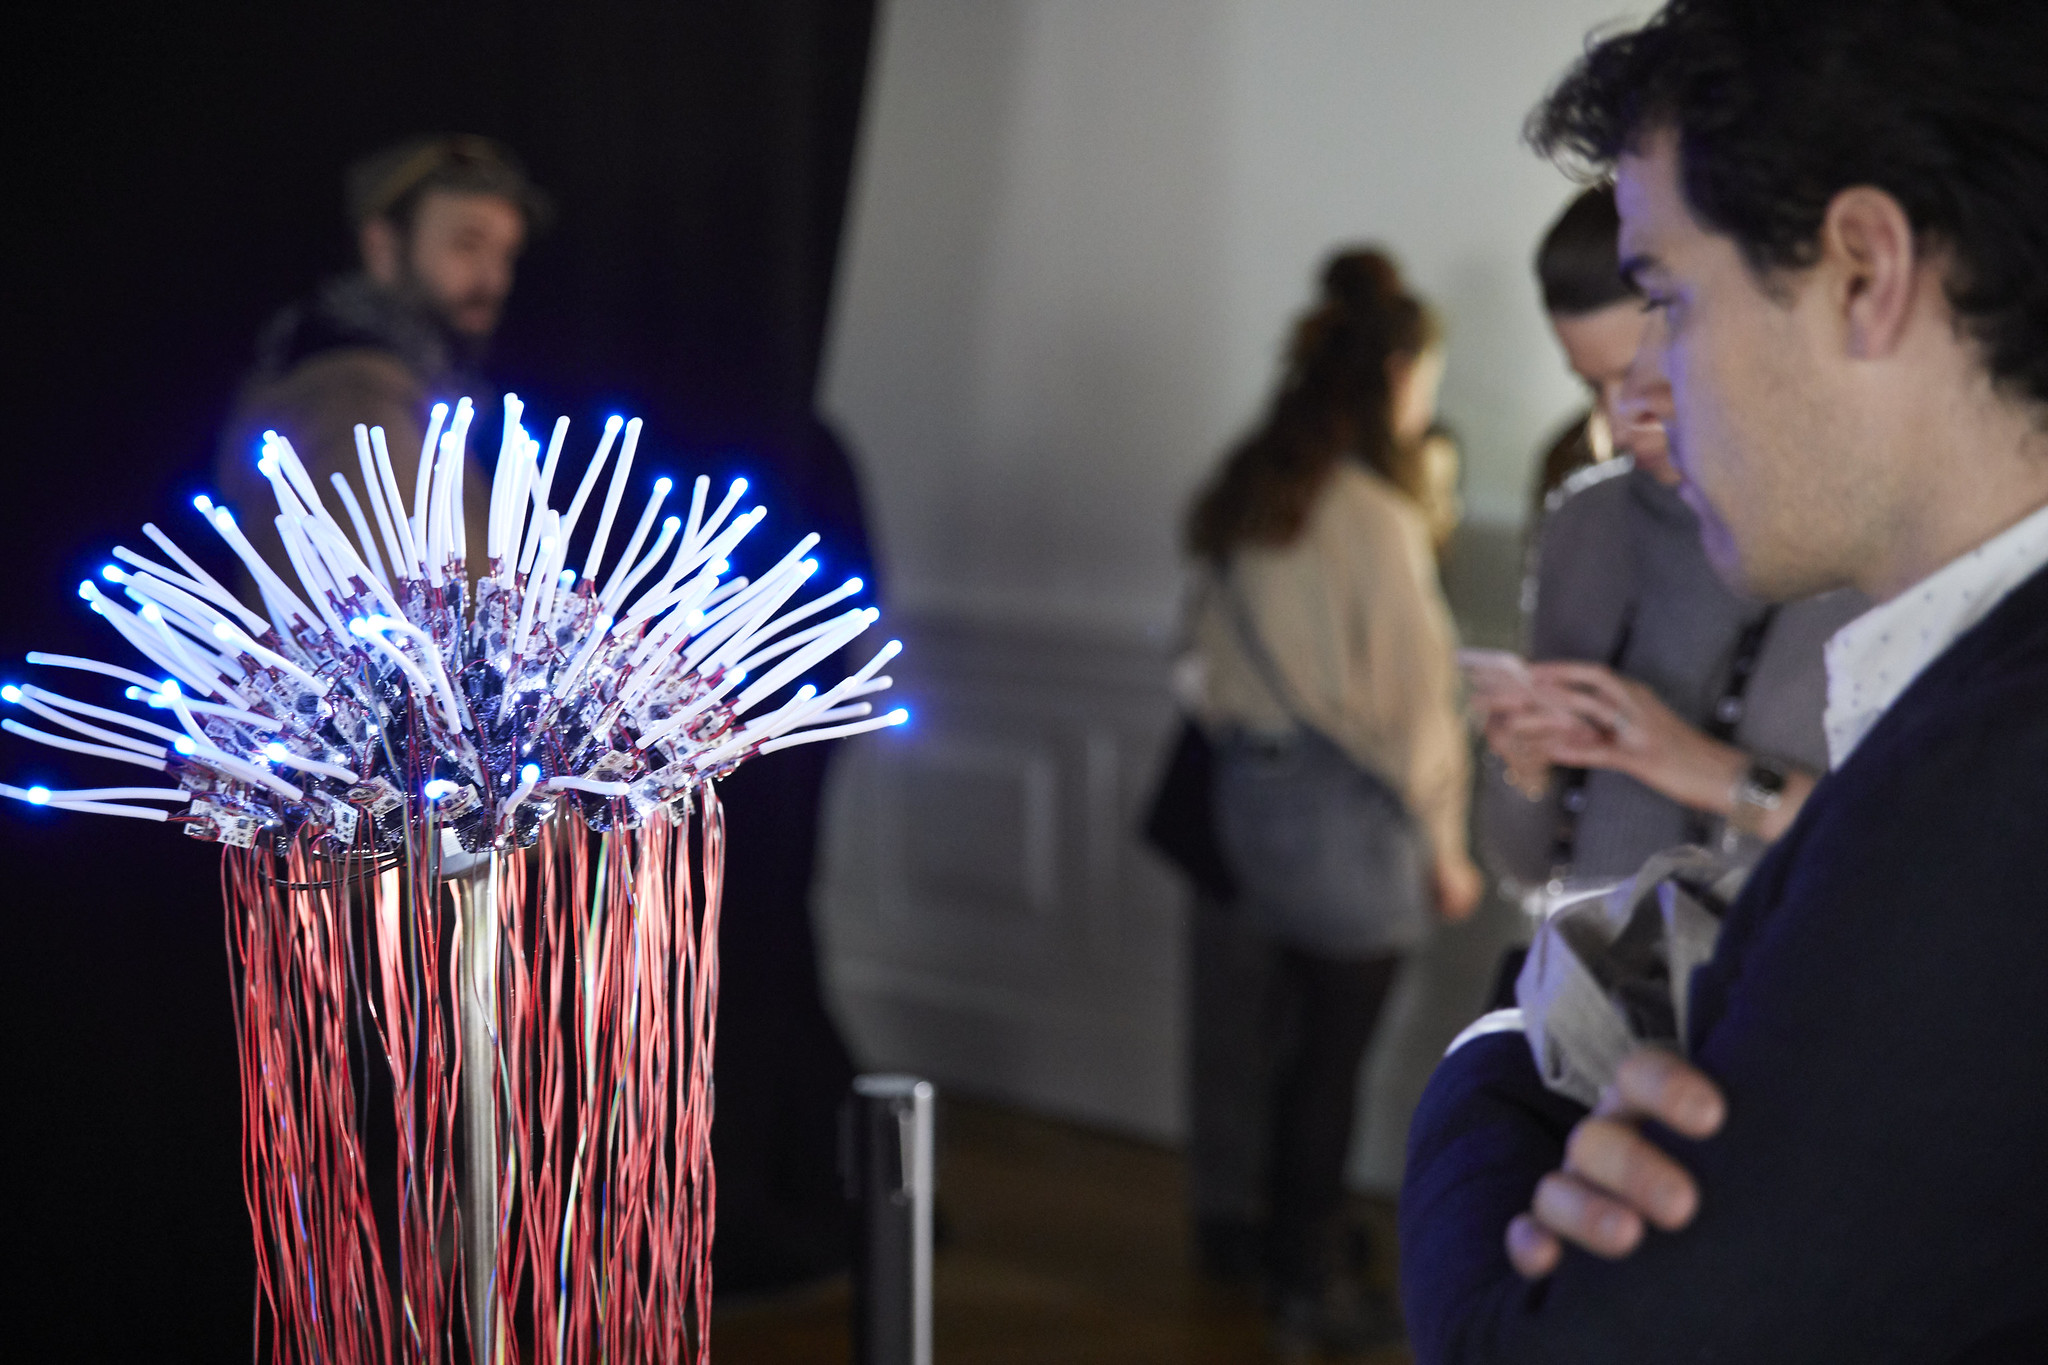 The digital art festival Recto VRso to be held both in virtual and physical during the Laval Virtual VR/AR exhibition